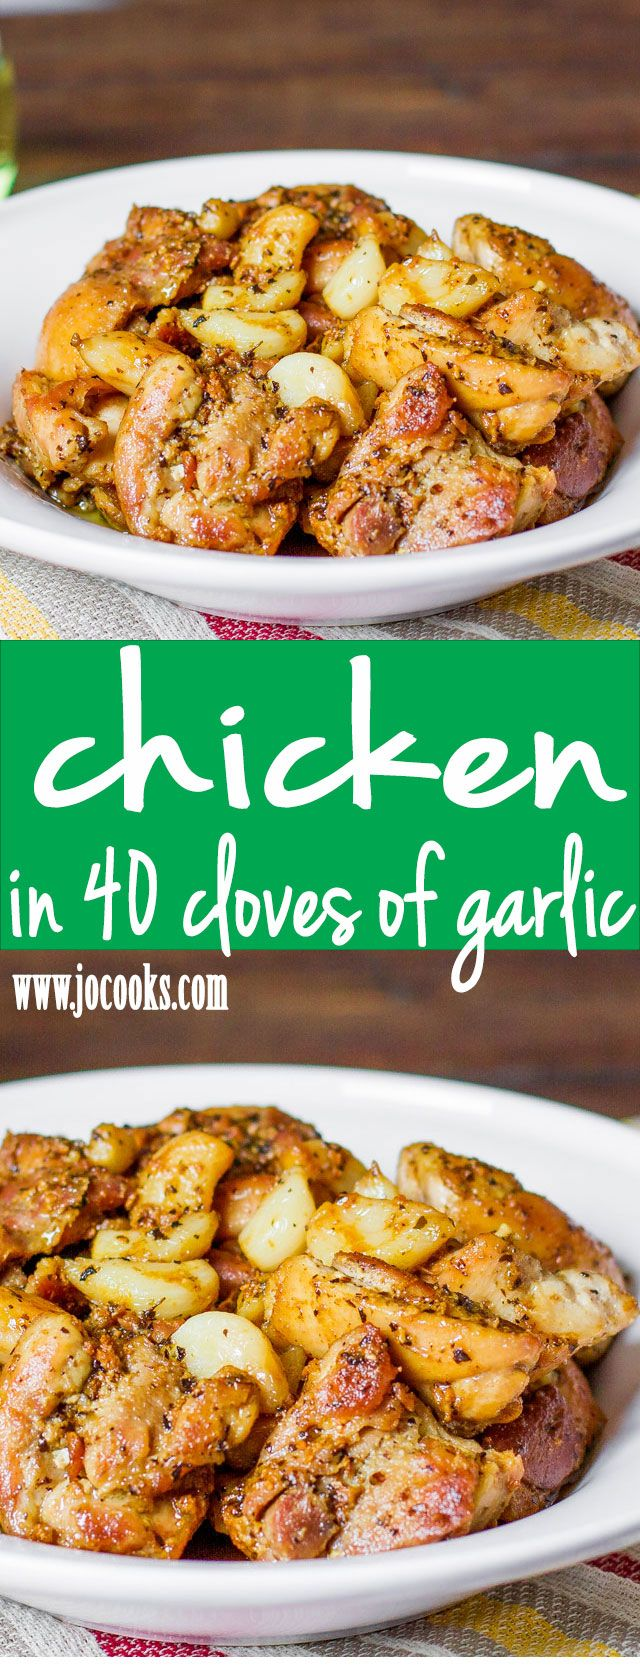 Chicken with 40 Cloves of Garlic | Recipe | Vegetables, Olives and ...